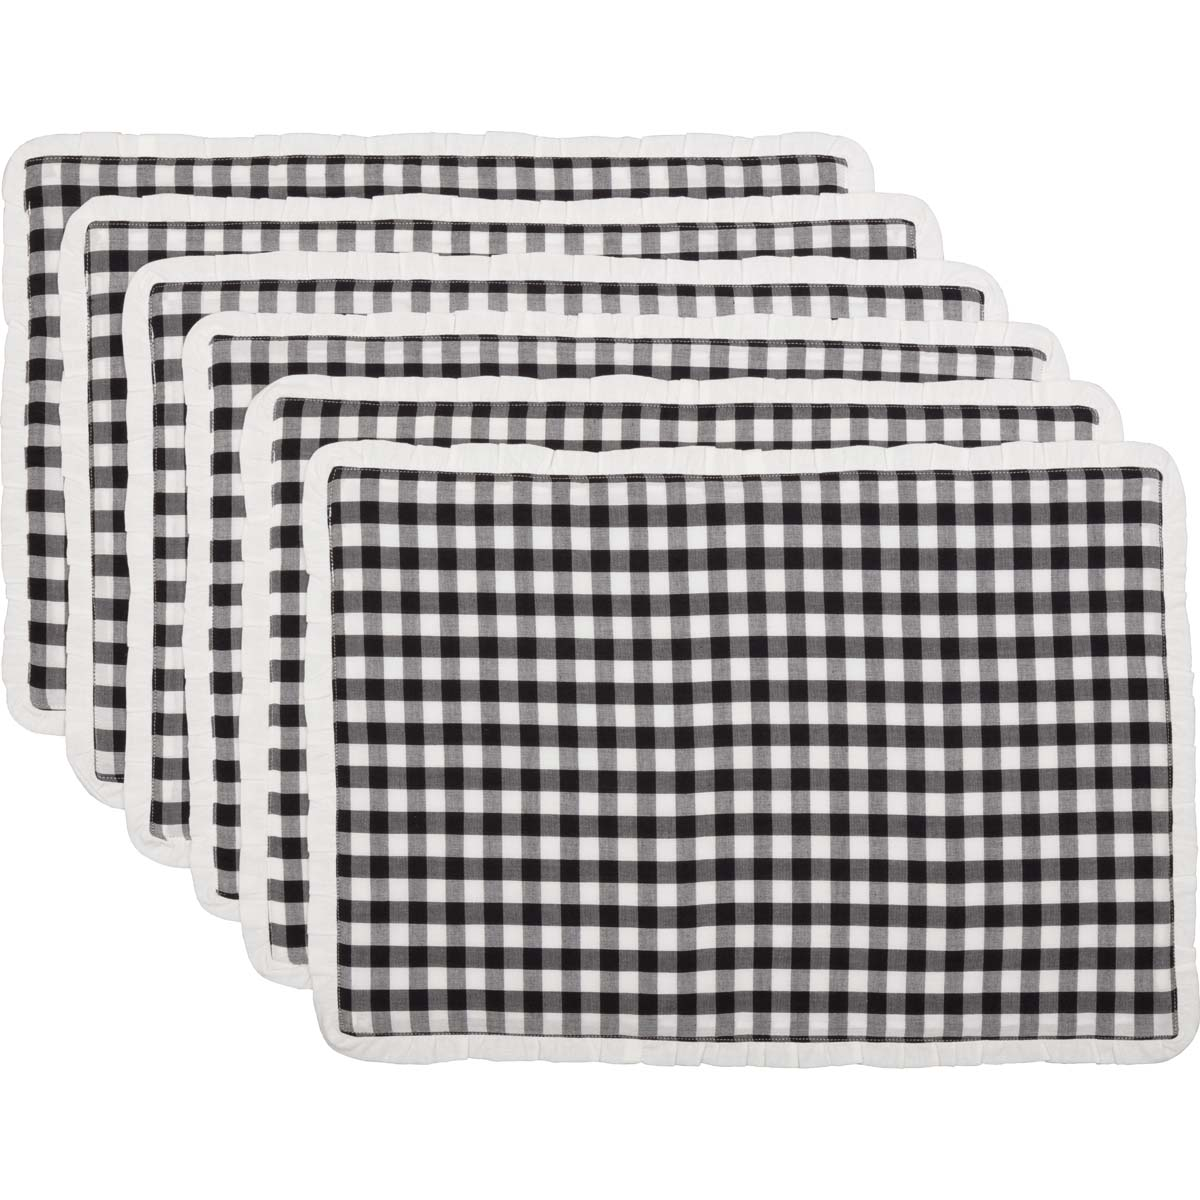 Emmie Black Placemat Set of 6 12x18